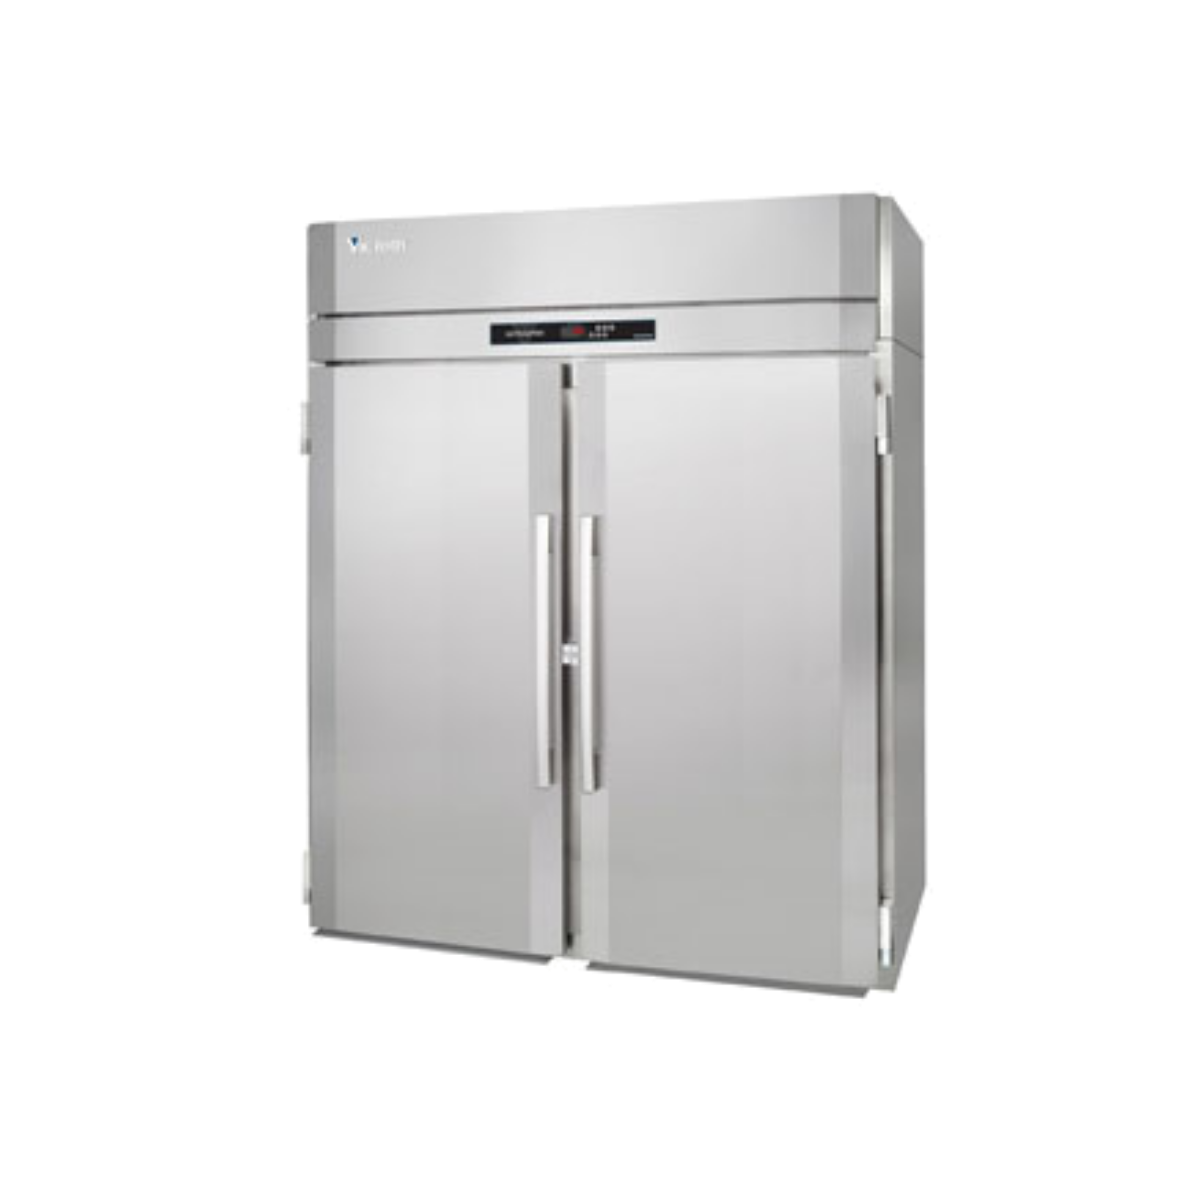 Victory RISA-2D-S1 Roll In Refrigerator, 2 Section